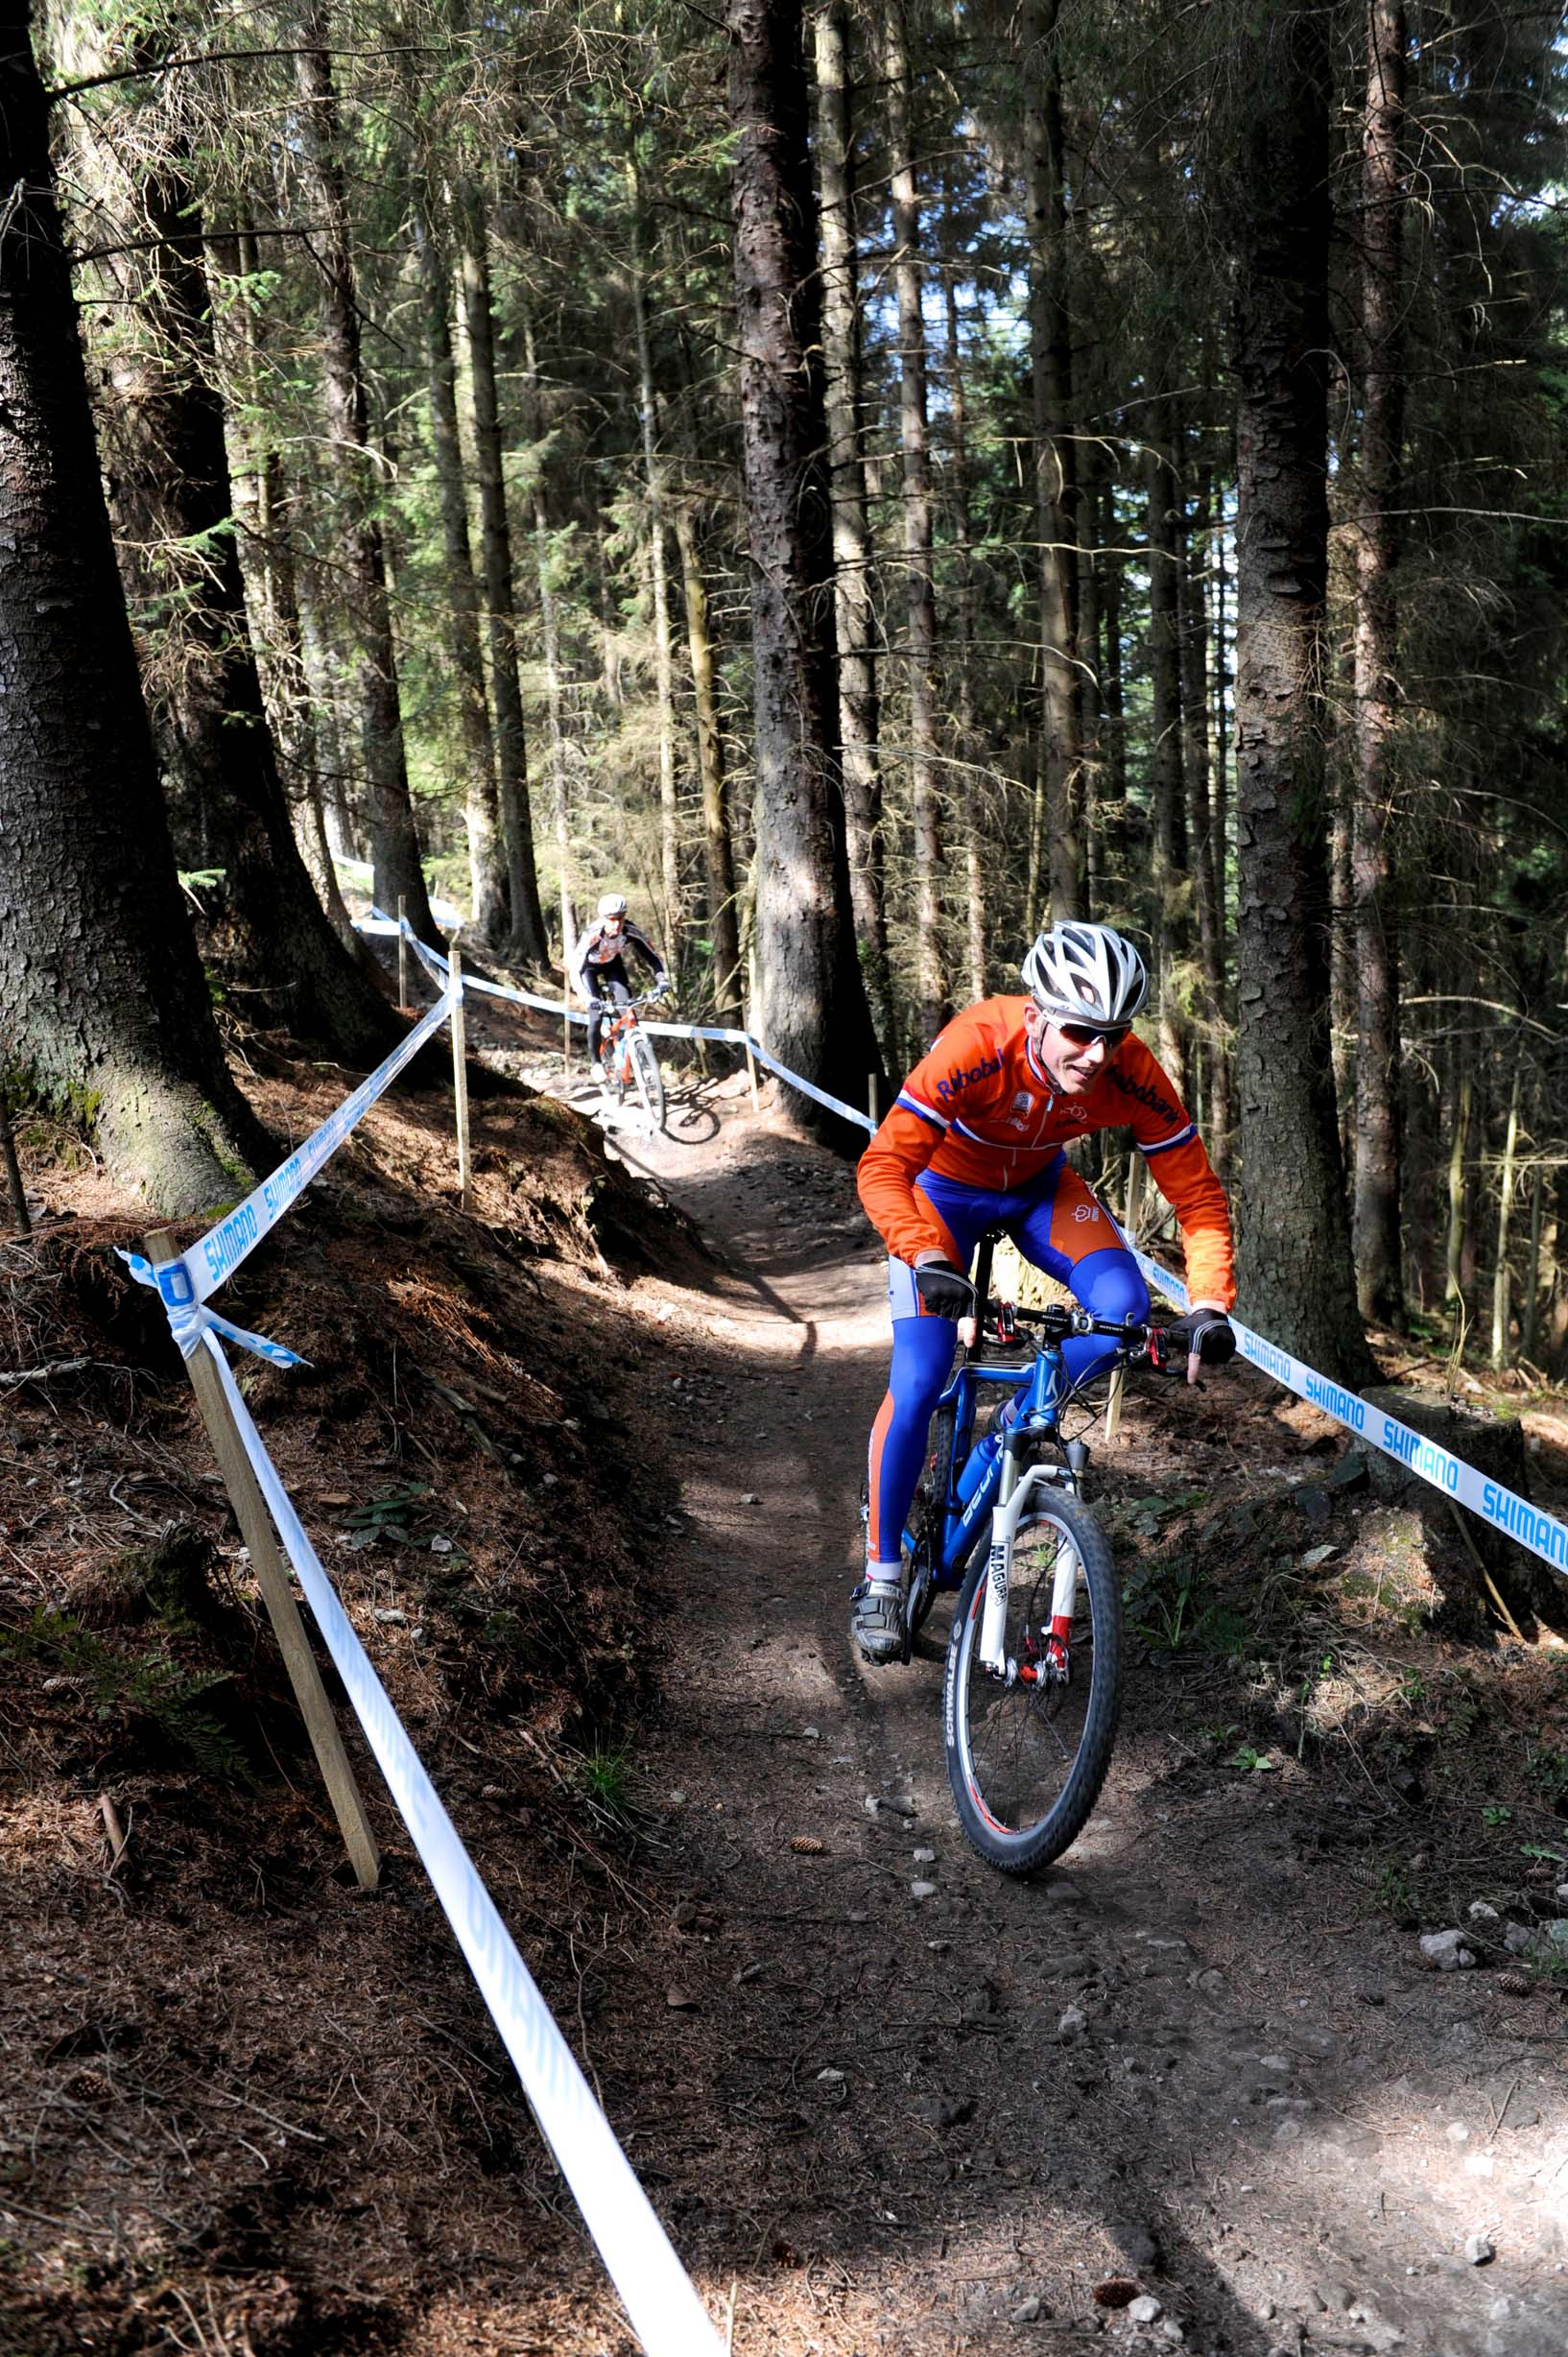 Uci Mtb Xc World Cup In Dalby Forest The Pro S Have